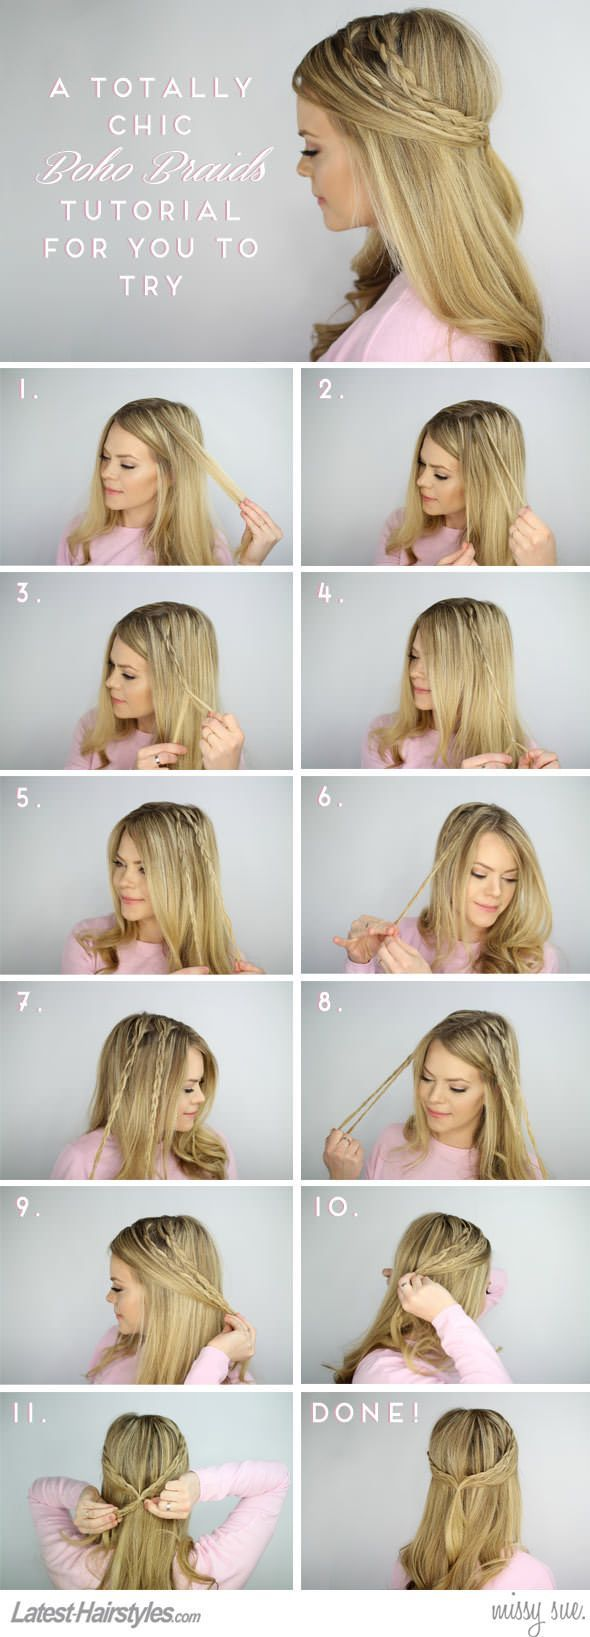 110 best Summer Hair Styles images on Pinterest | Hair dos, Chignons ...